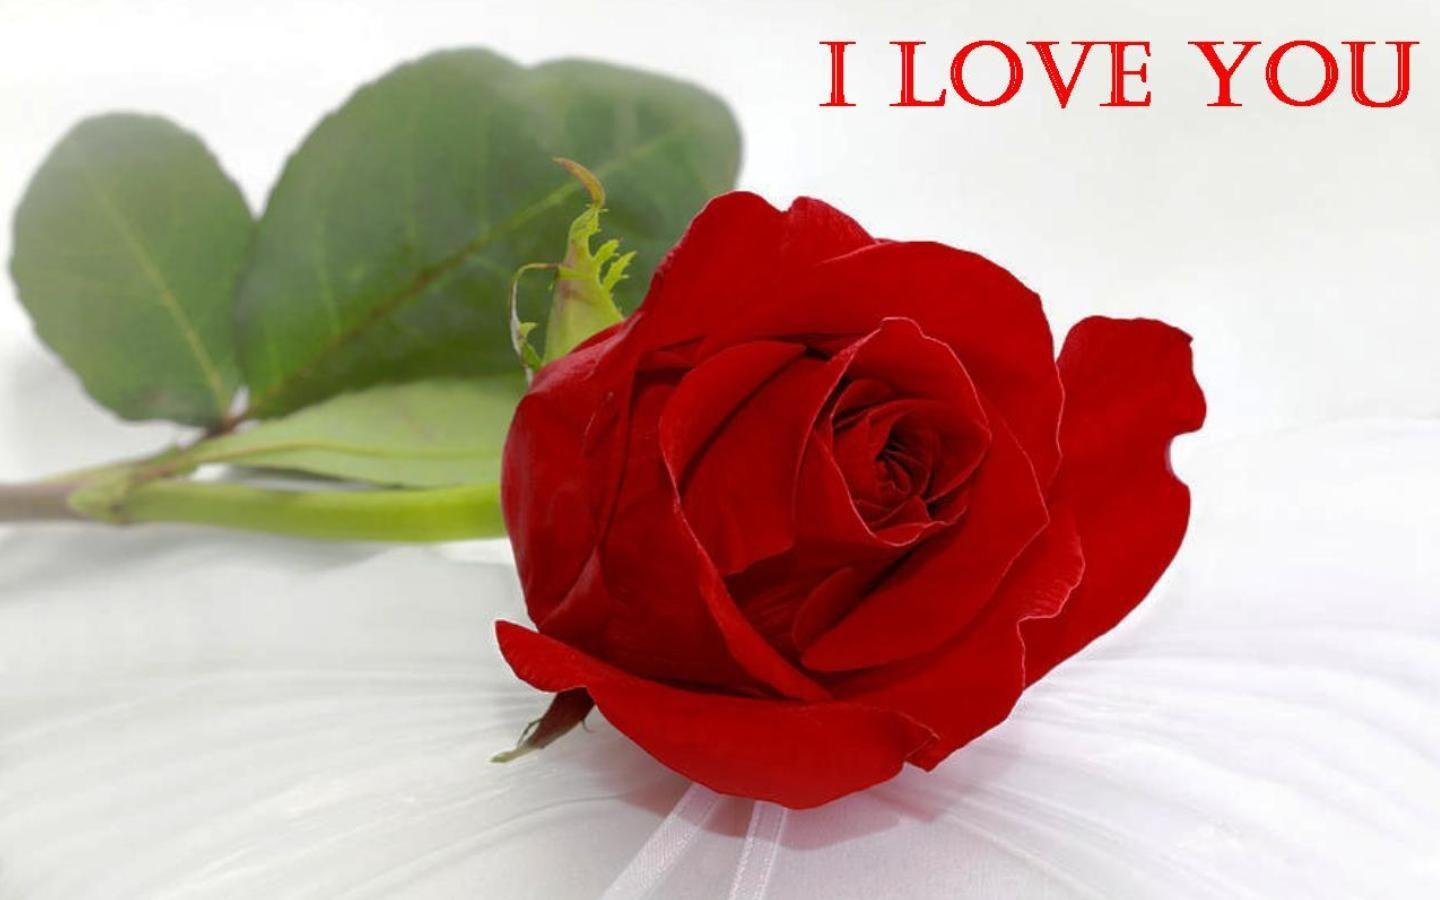 Red Rose Wallpapers For Love Wallpaper Cave